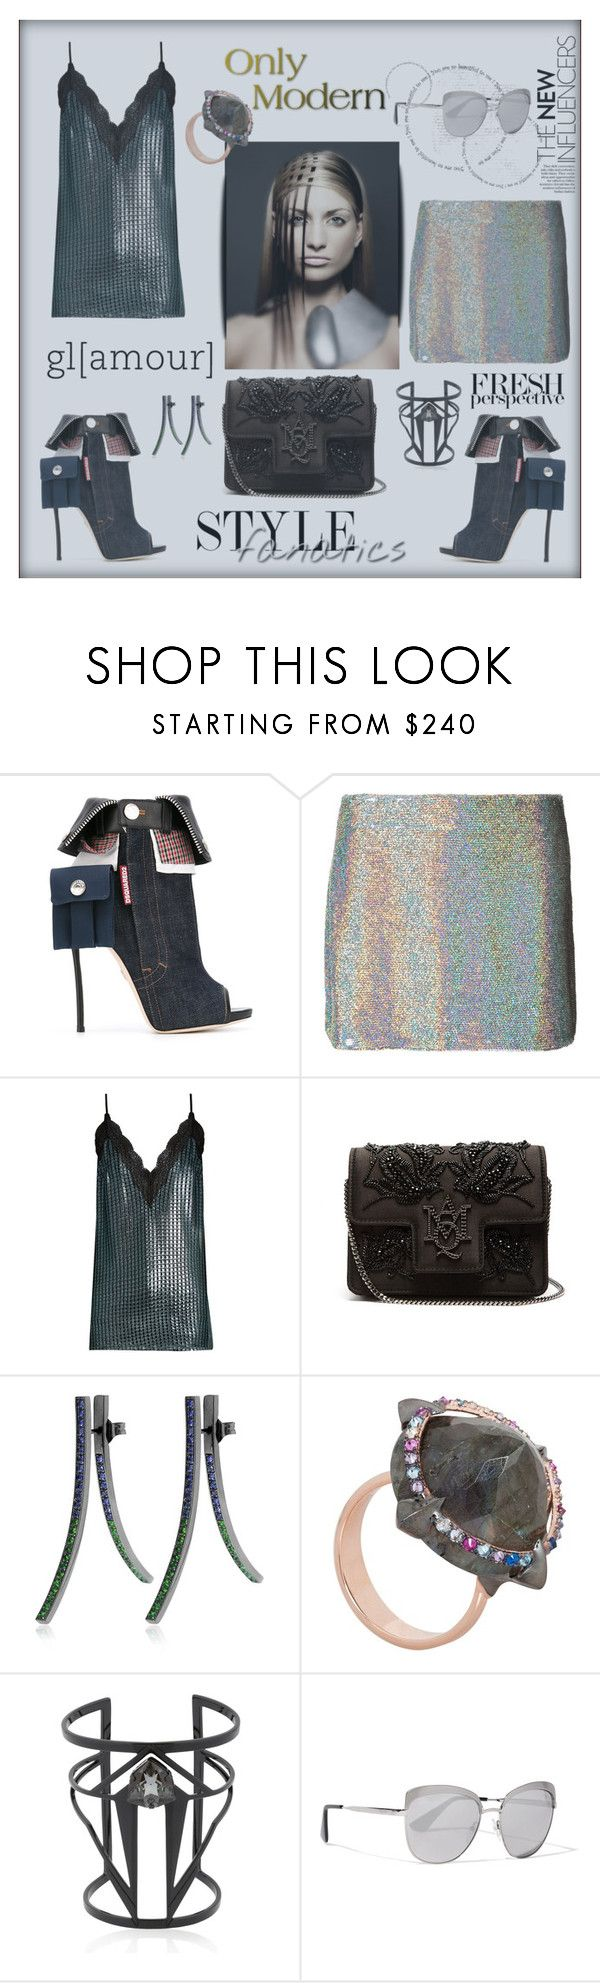 """Style Fanatics"" by zabead ❤ liked on Polyvore featuring Dsquared2, Ashish, House of Holland, Alexander McQueen, Bea Bongiasca, Katie Rowland, Maria Francesca Pepe and Prada"